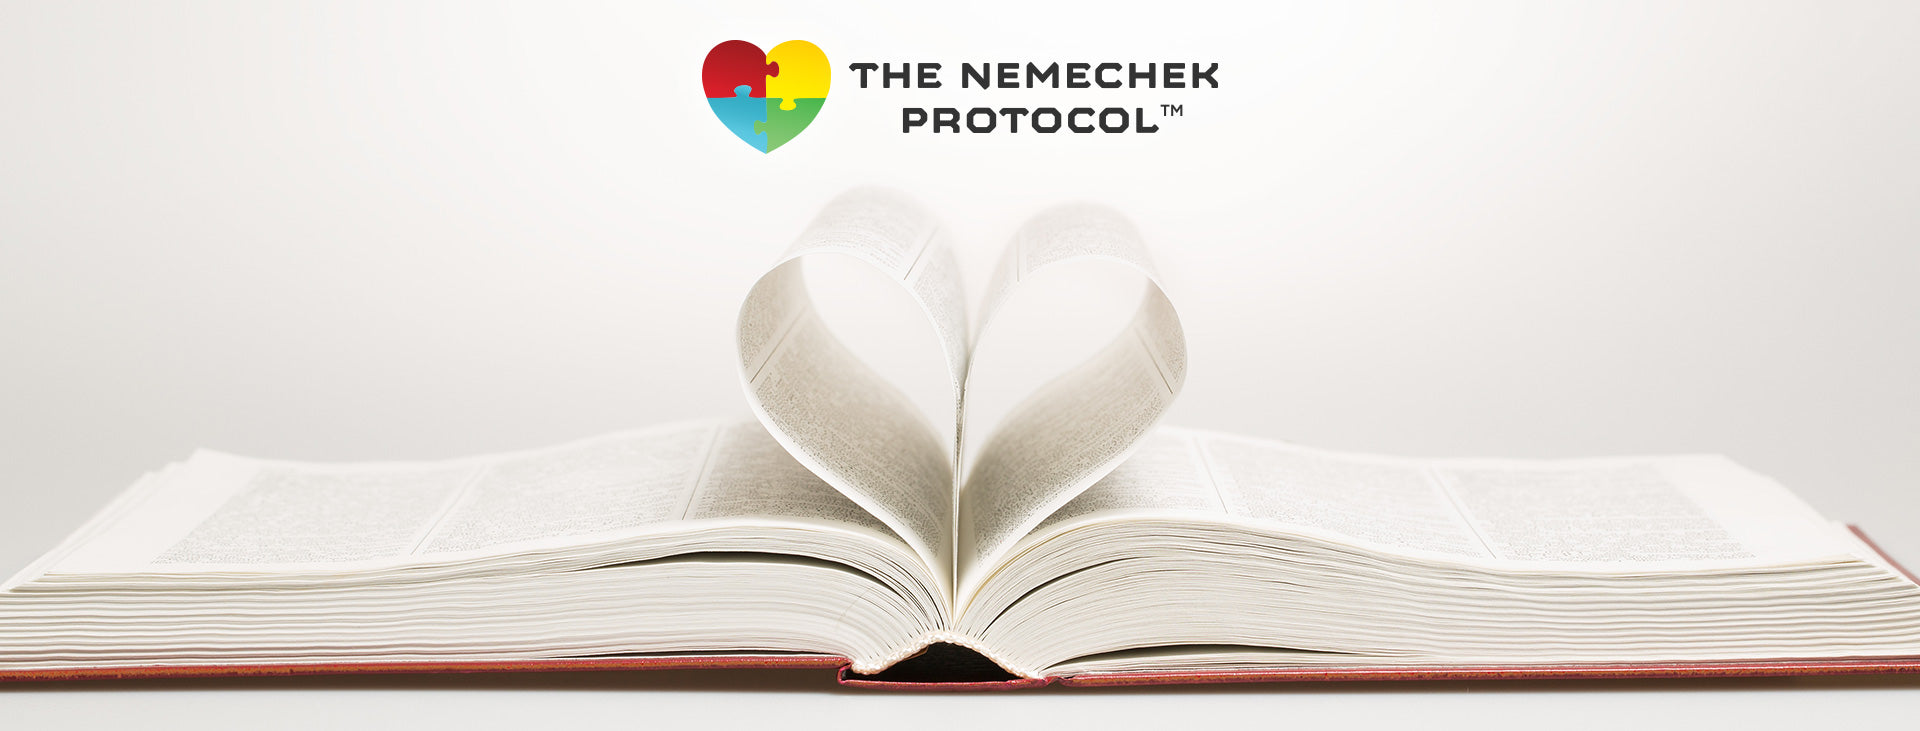 Nemechek Protocol Book Reviews